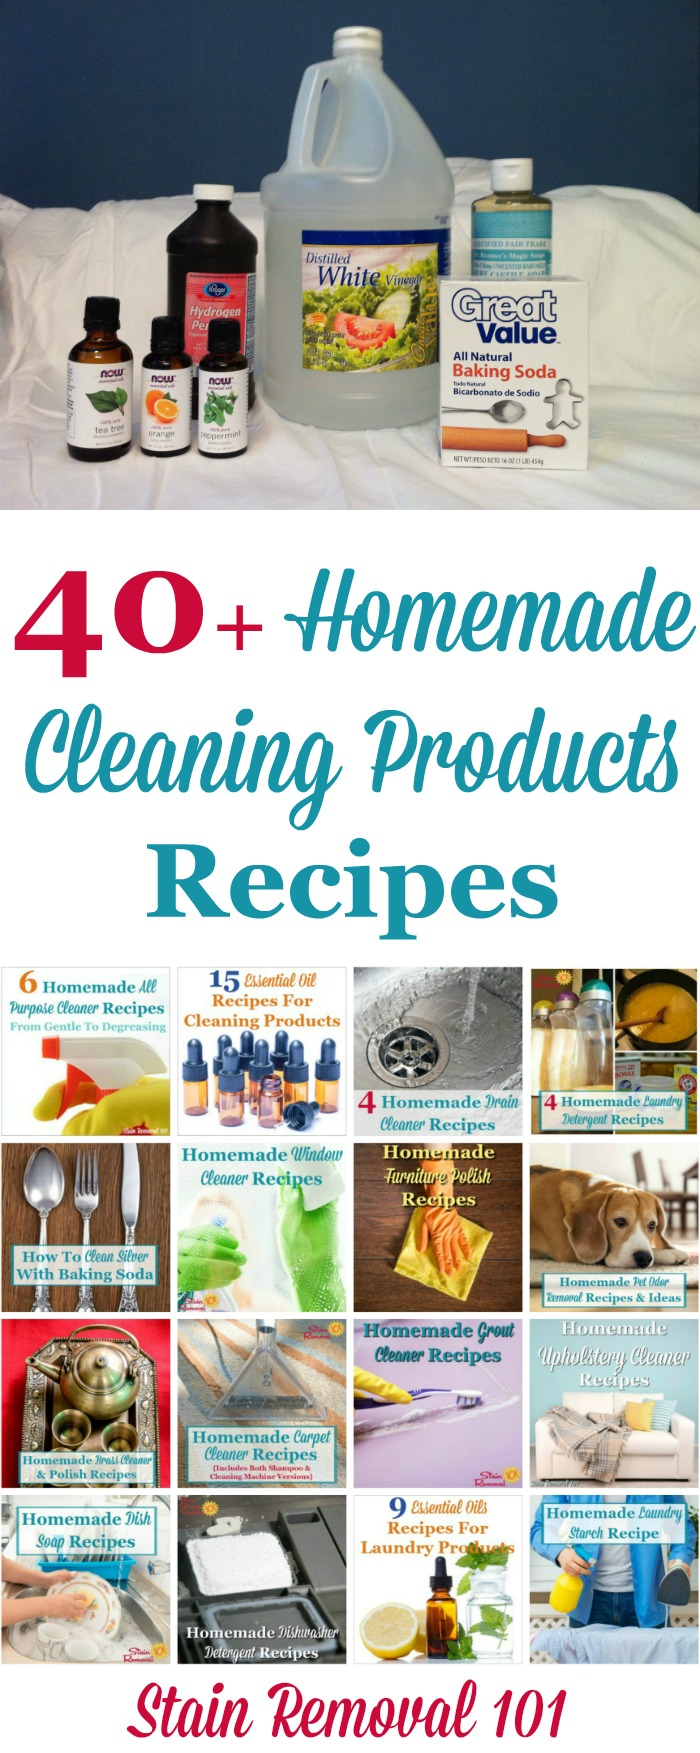 Over 40 homemade cleaning products recipes and instructions, for all around your house, with many types of ingredients, so you can make your own homemade cleaning solutions. {on Stain Removal 101}